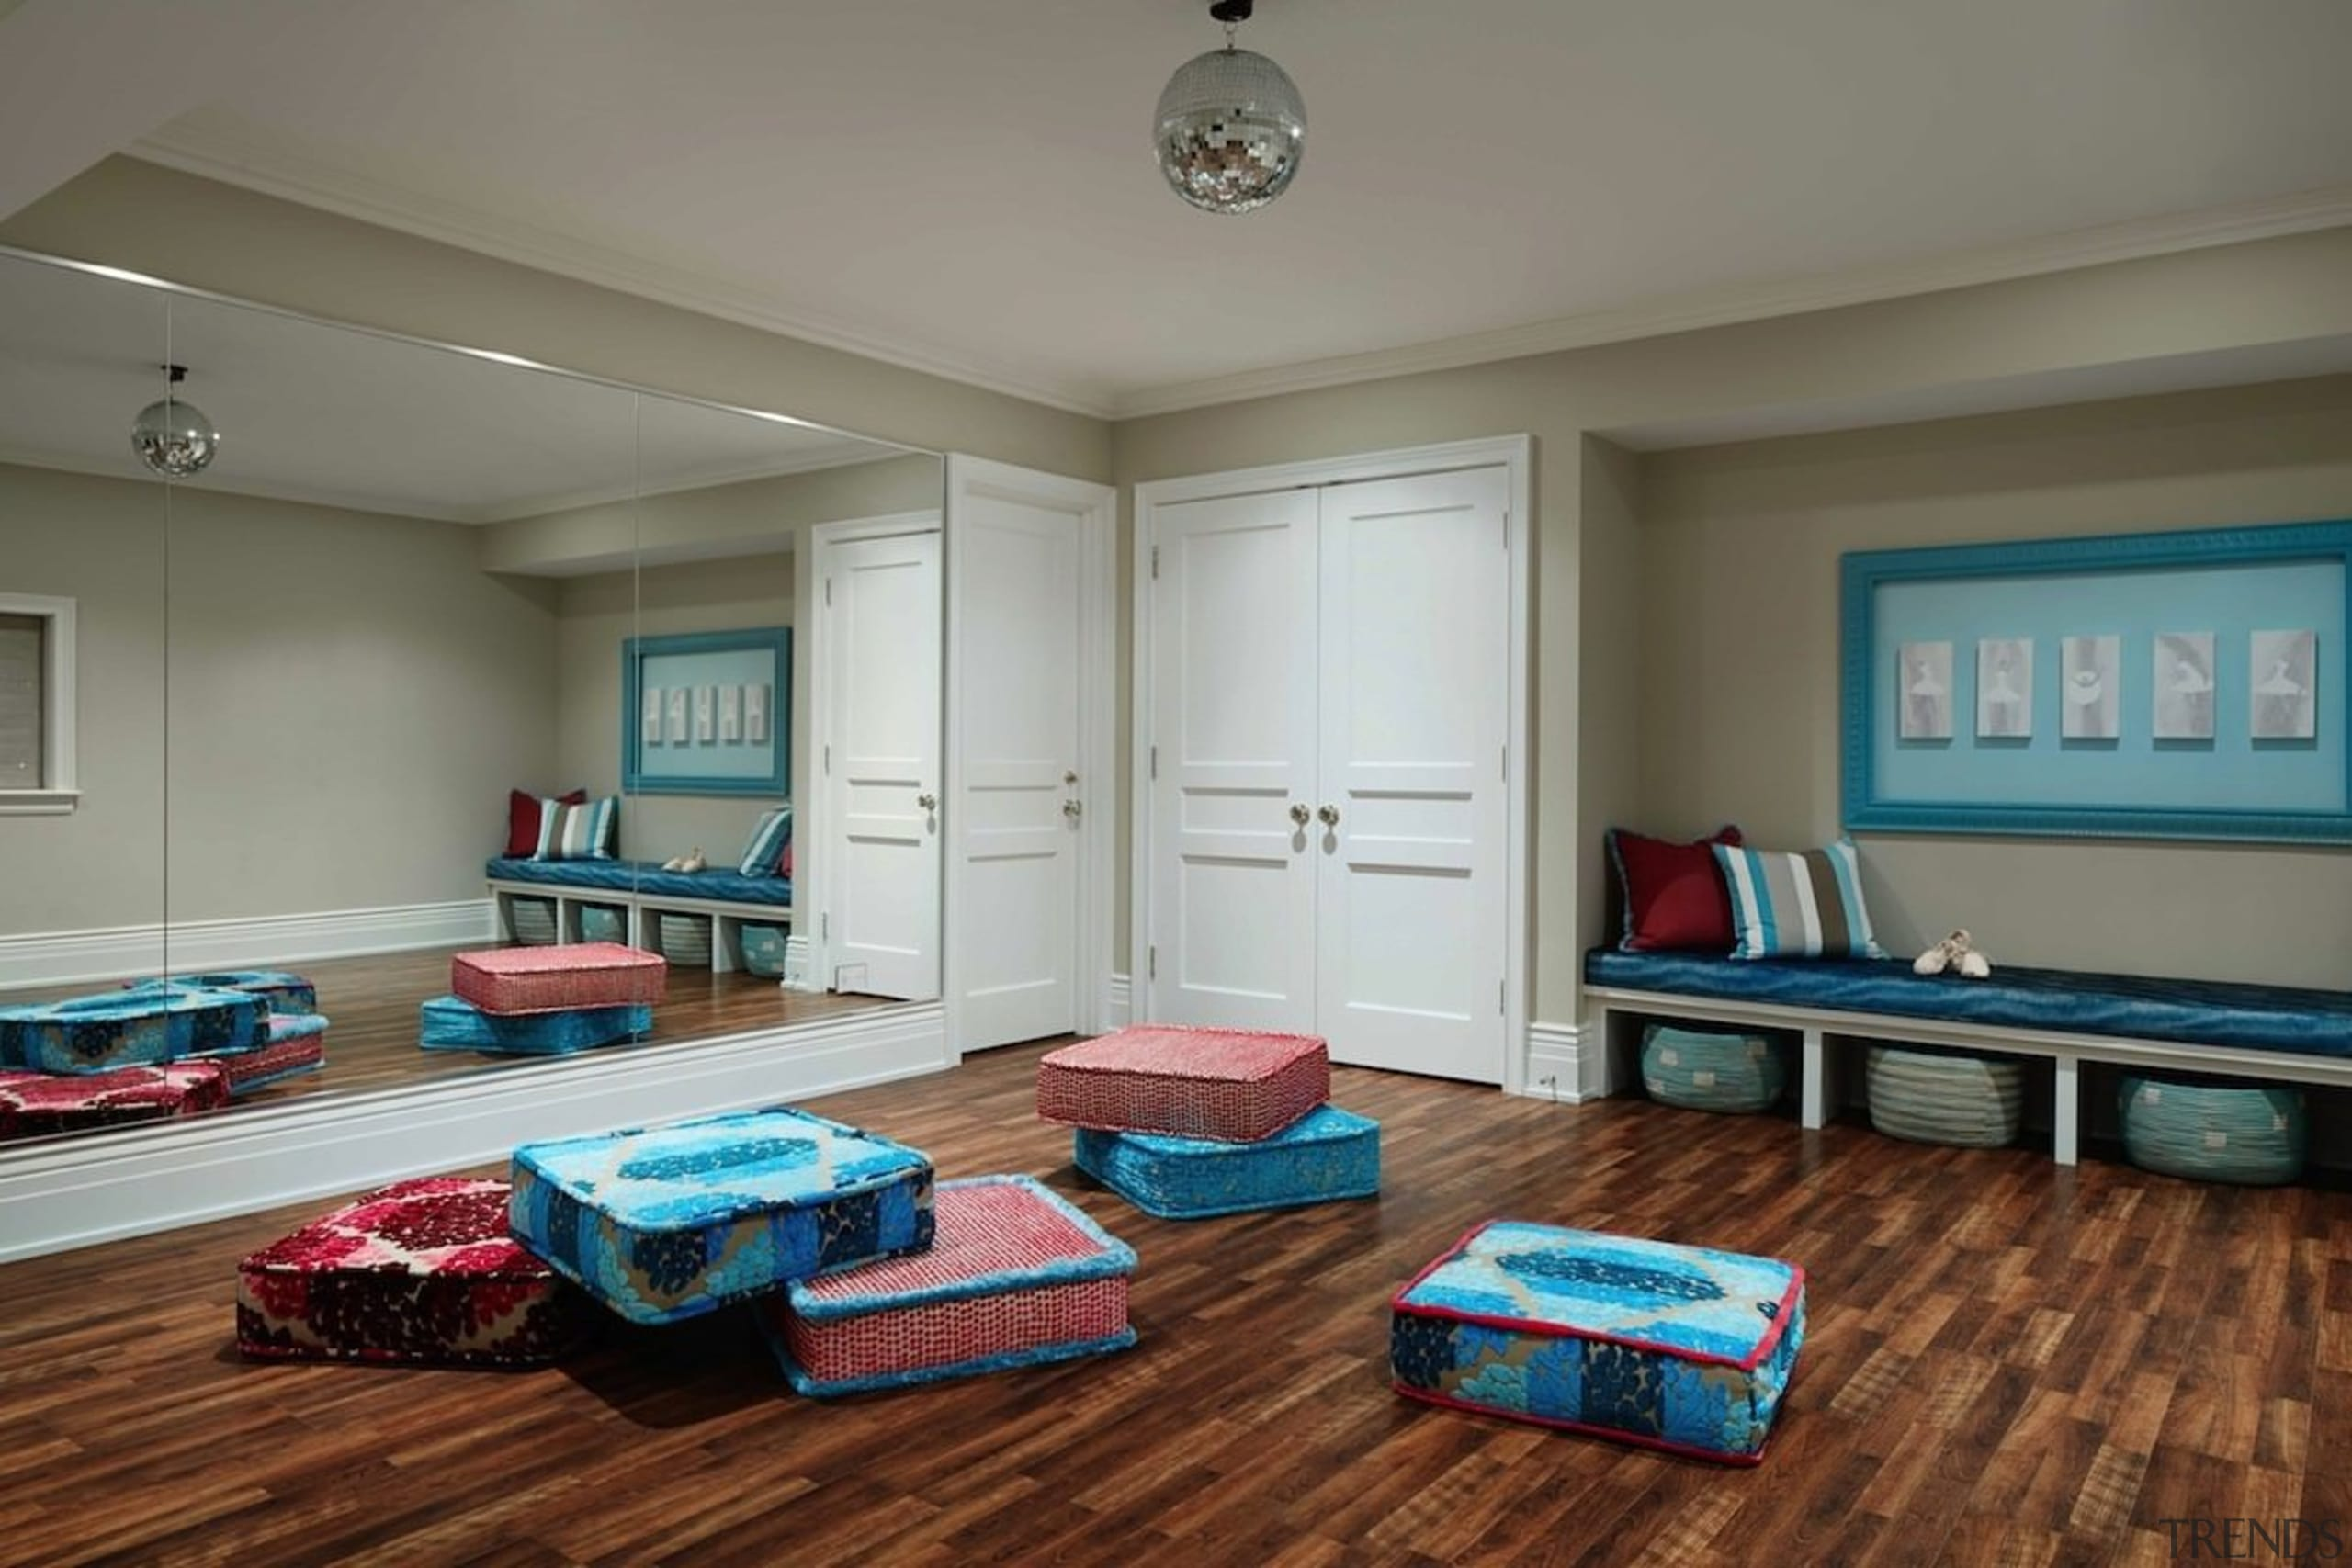 This studio is, like the gym, another internal ceiling, floor, flooring, hardwood, home, house, interior design, living room, property, real estate, recreation room, room, gray